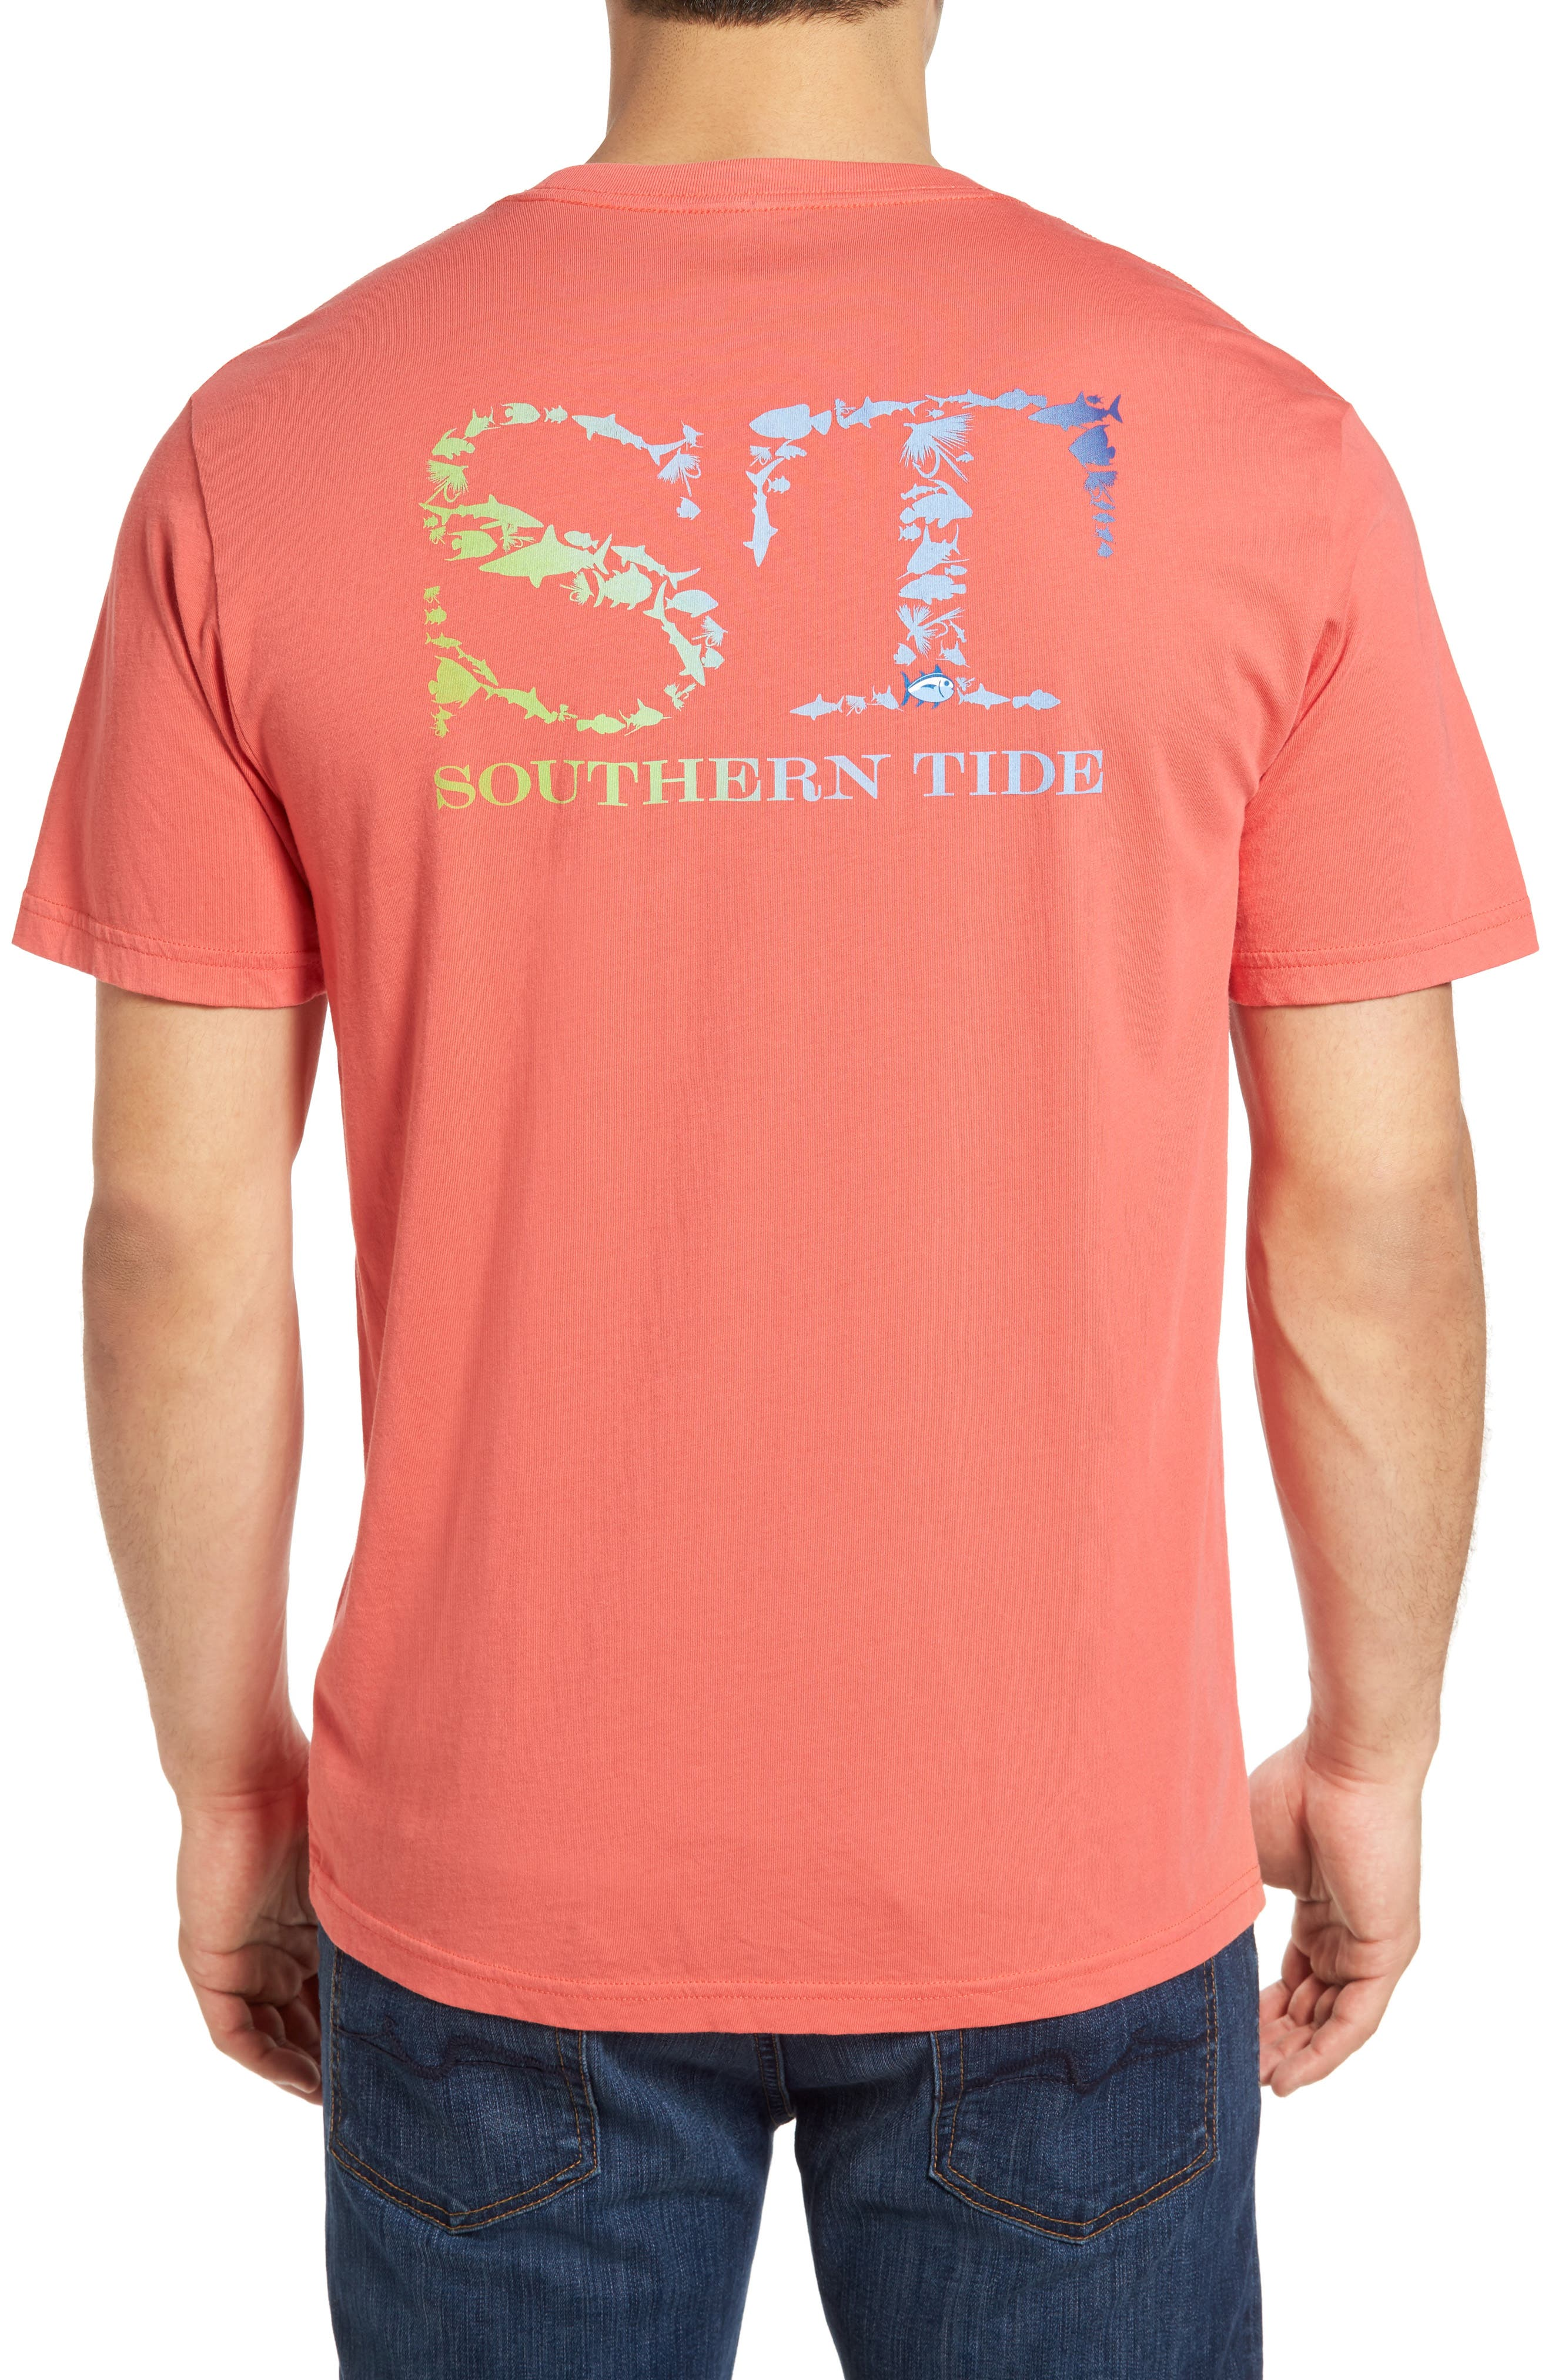 Southern Tide School of Fish Graphic T-Shirt